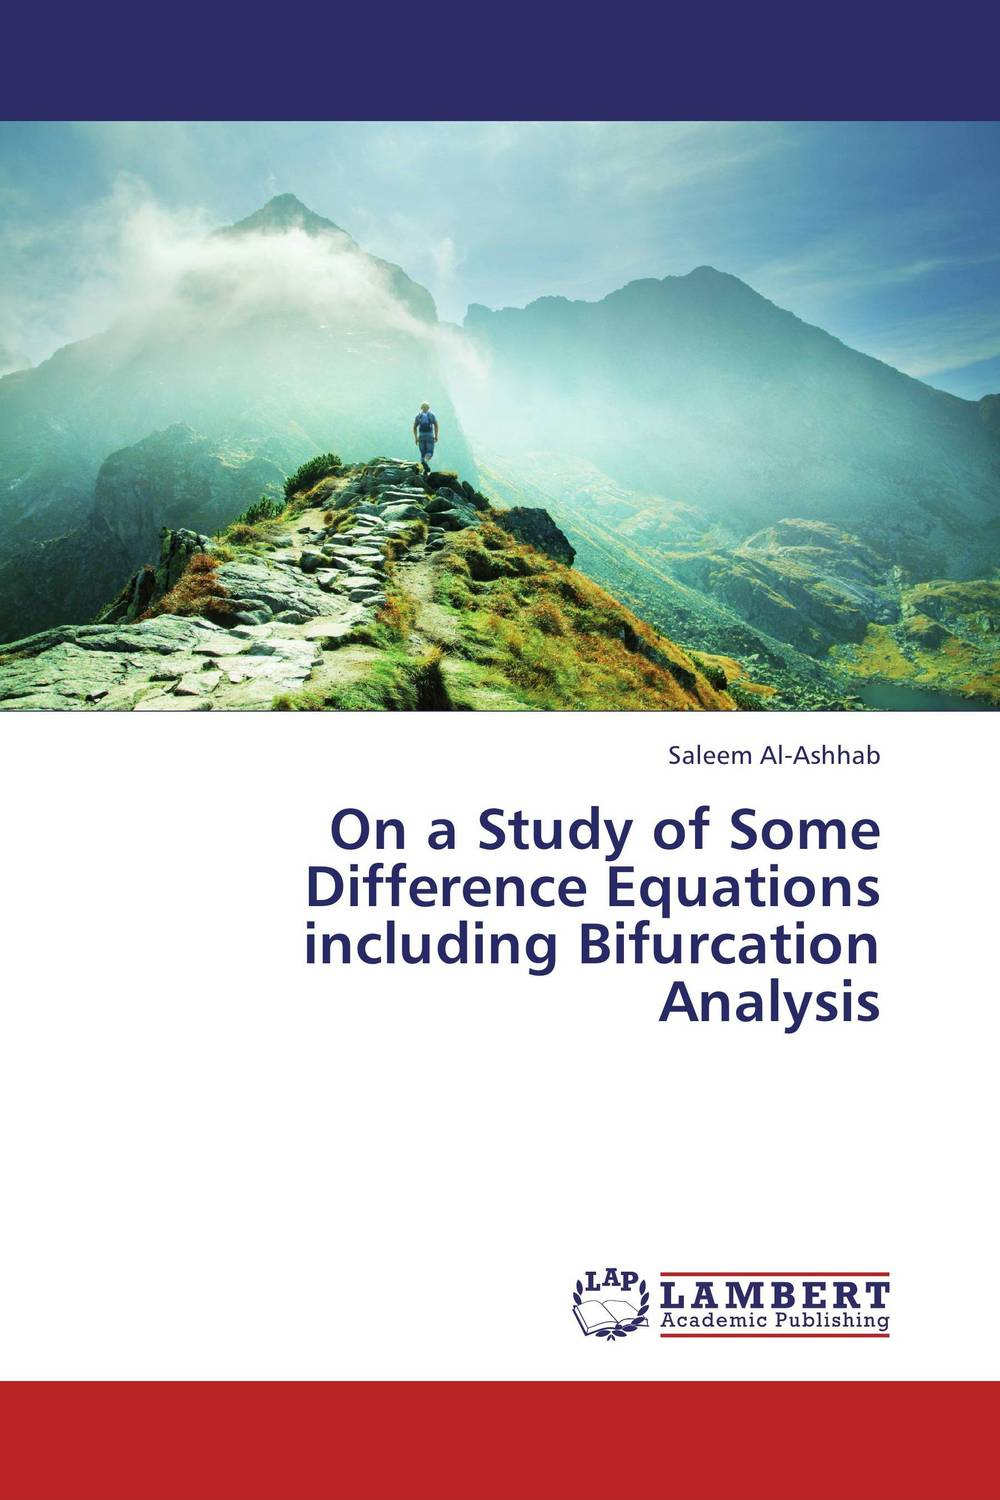 On a Study of Some Difference Equations including Bifurcation Analysis